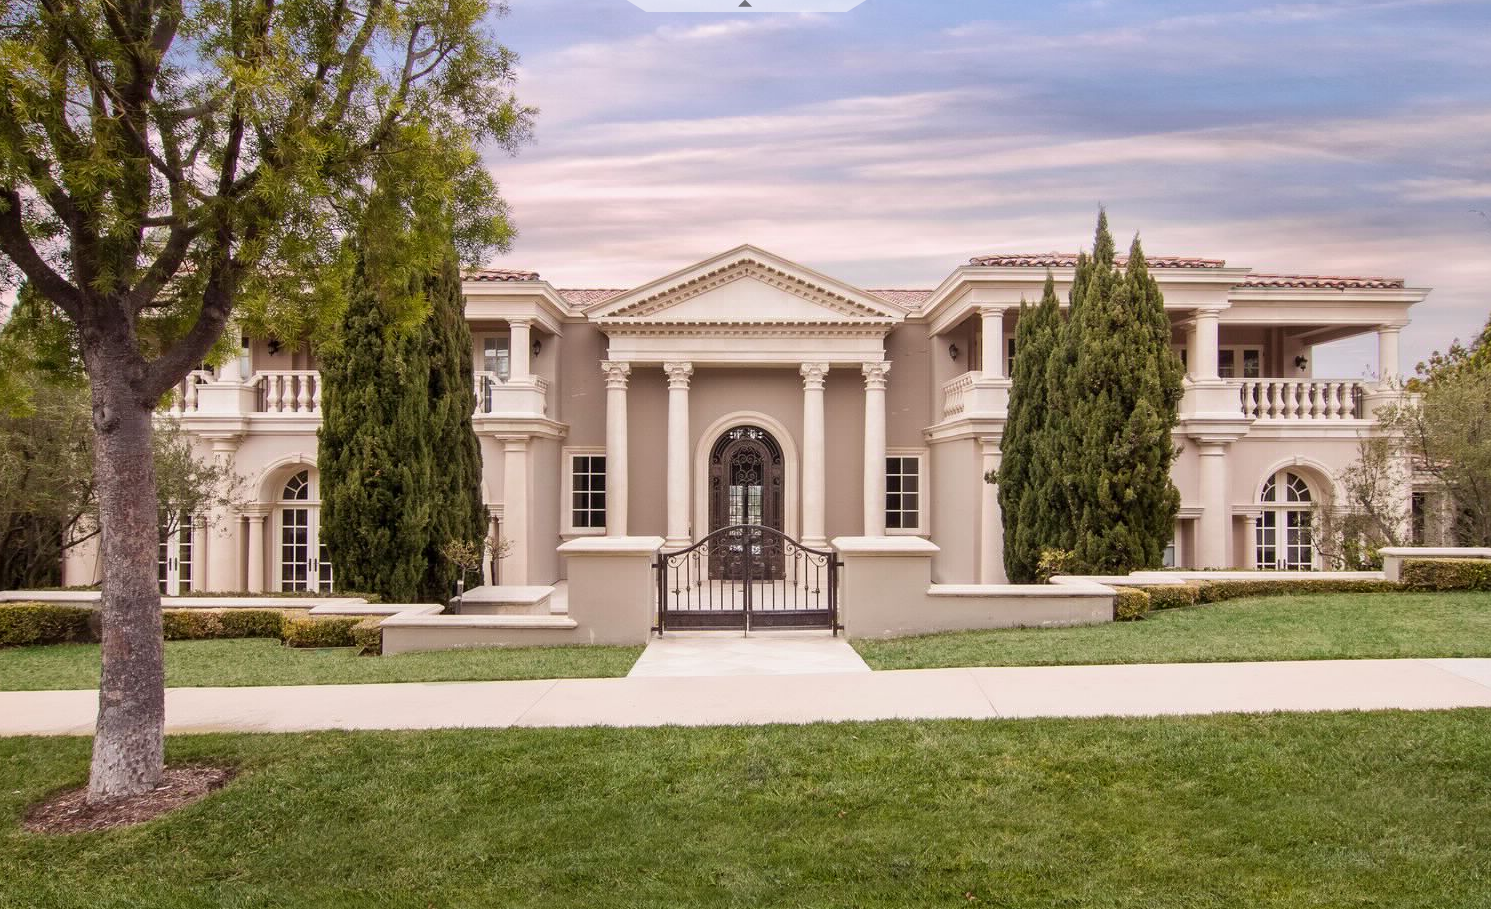 Mansions amp More Magnificent California Mansion for 7500000 : ScreenShot2012 03 18at84925PM from mansionsandmore.blogspot.com size 1491 x 909 png 2143kB